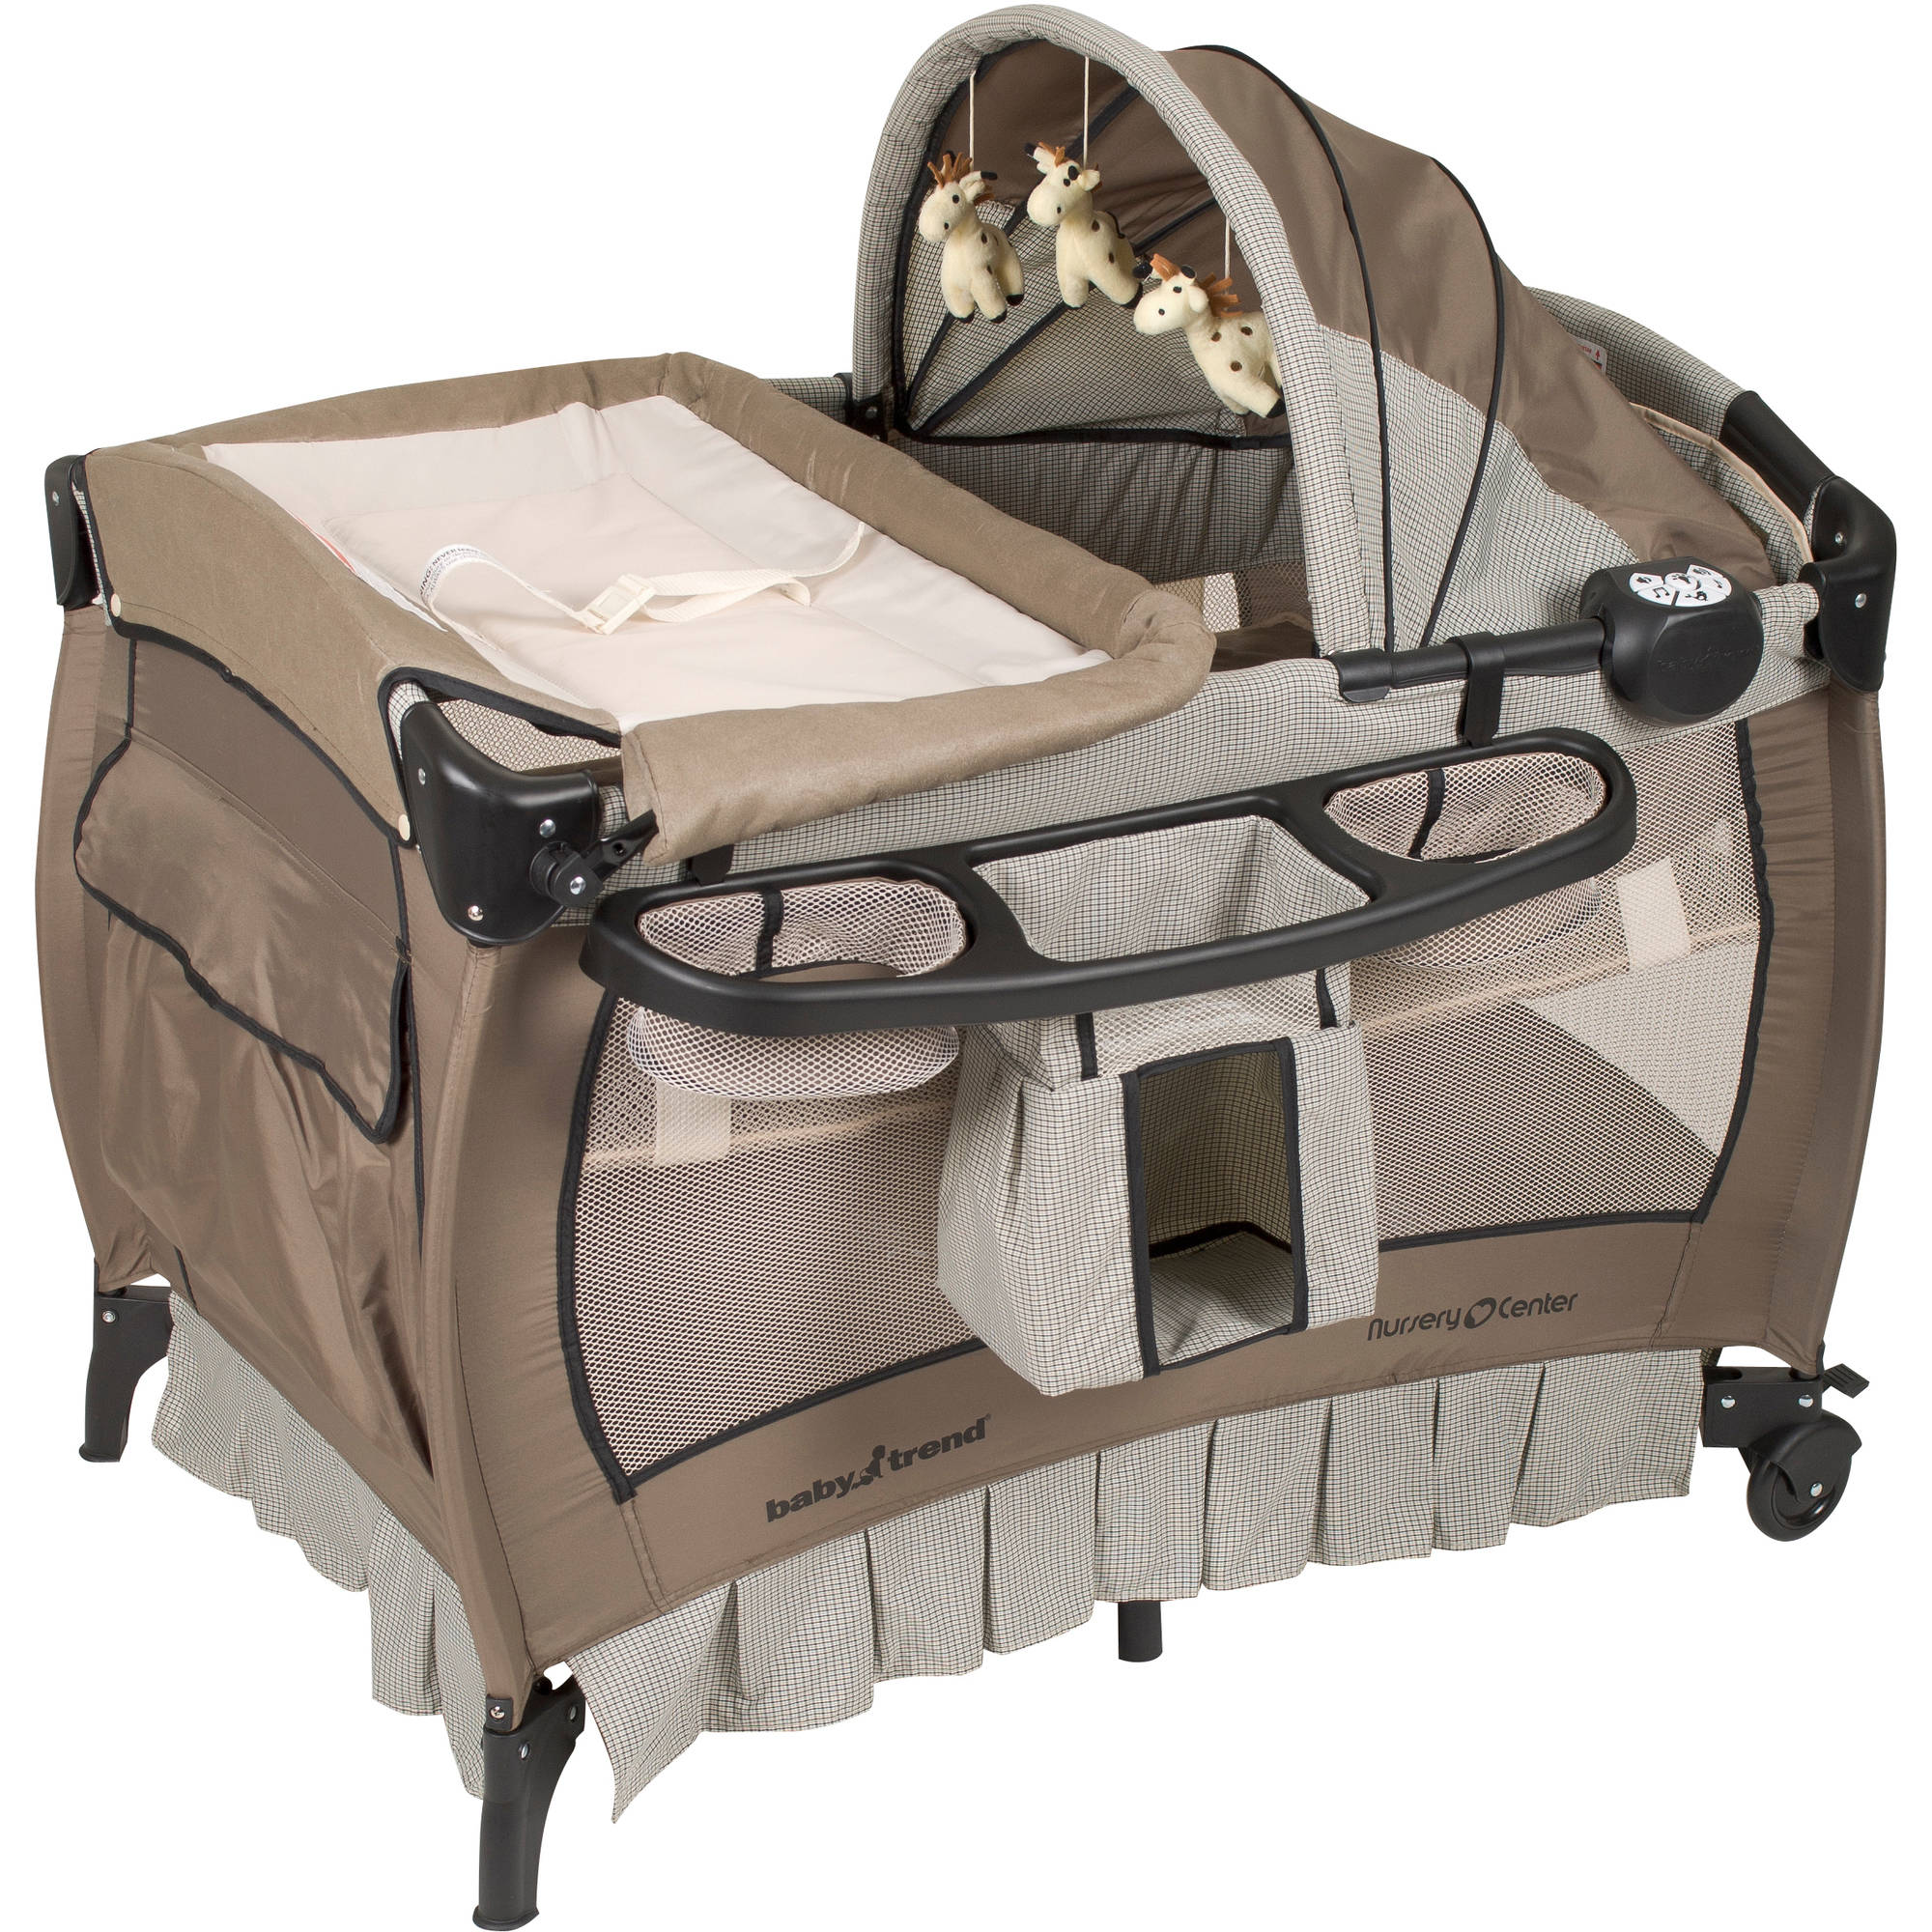 Baby Trend Nursery Center Play Pen, Deluxe Havenwood by Baby Trend